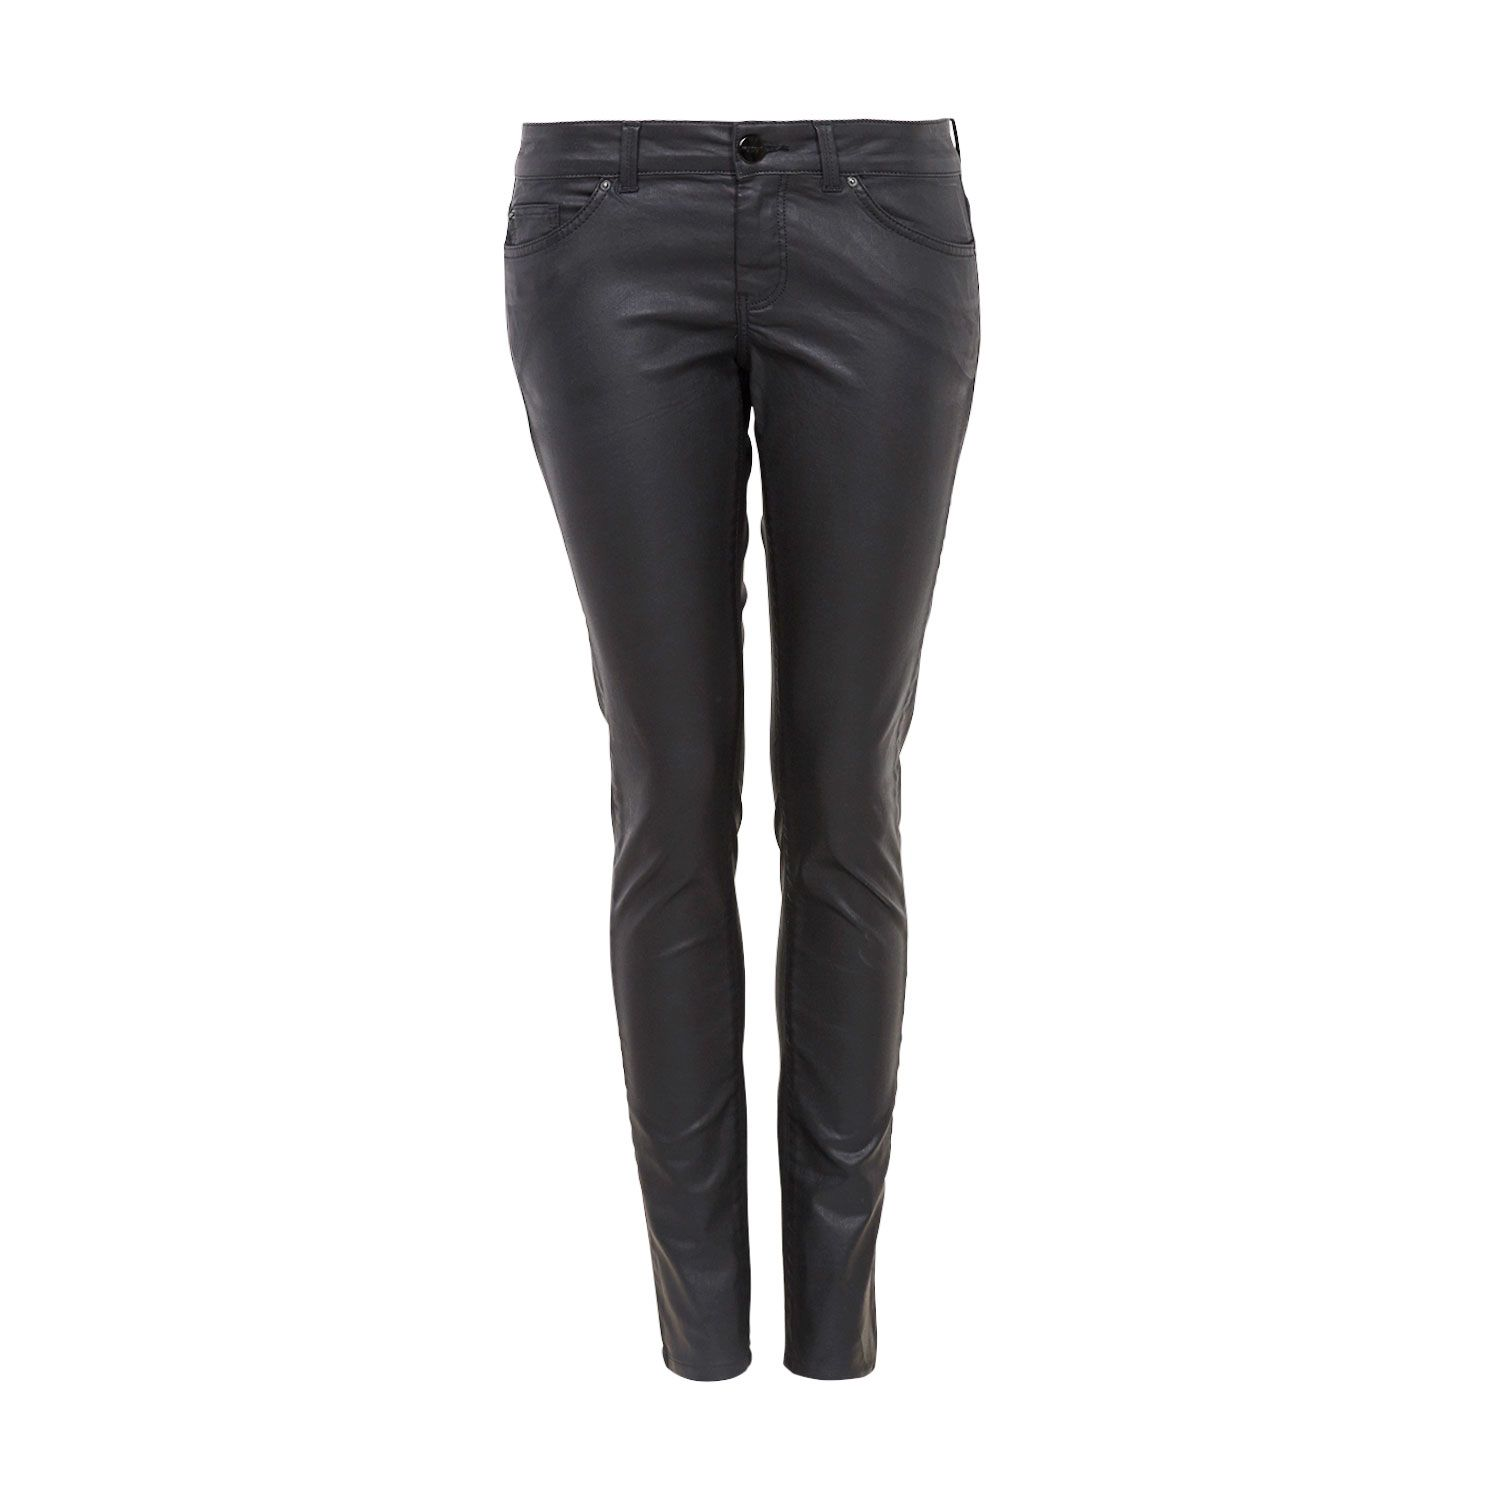 5 pocket style coated skinny jeans